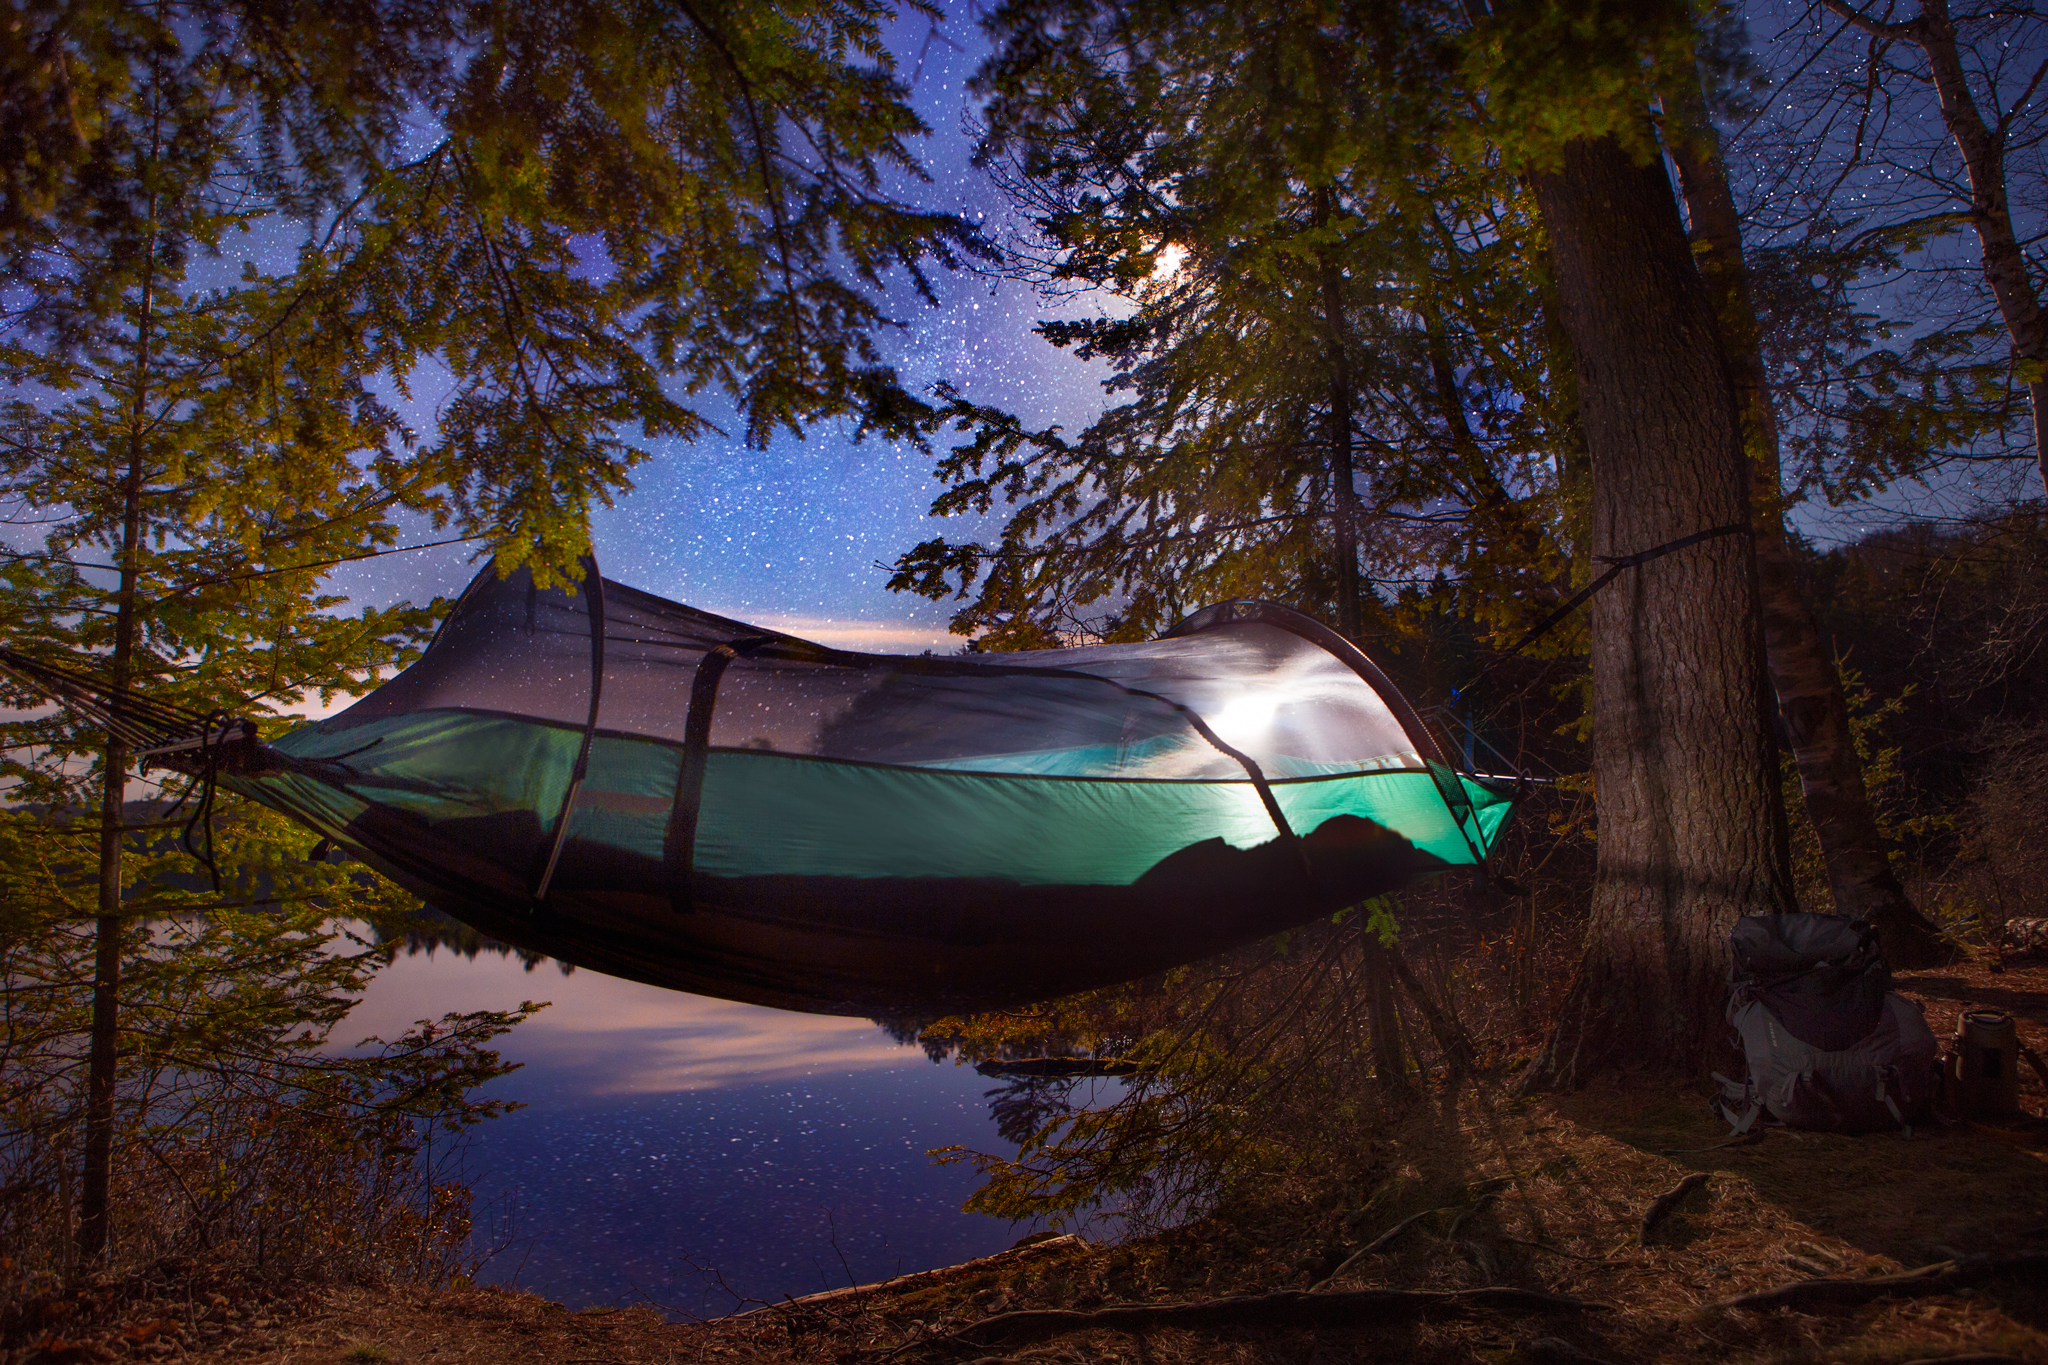 Lawson hammock set up under the moon and stars.